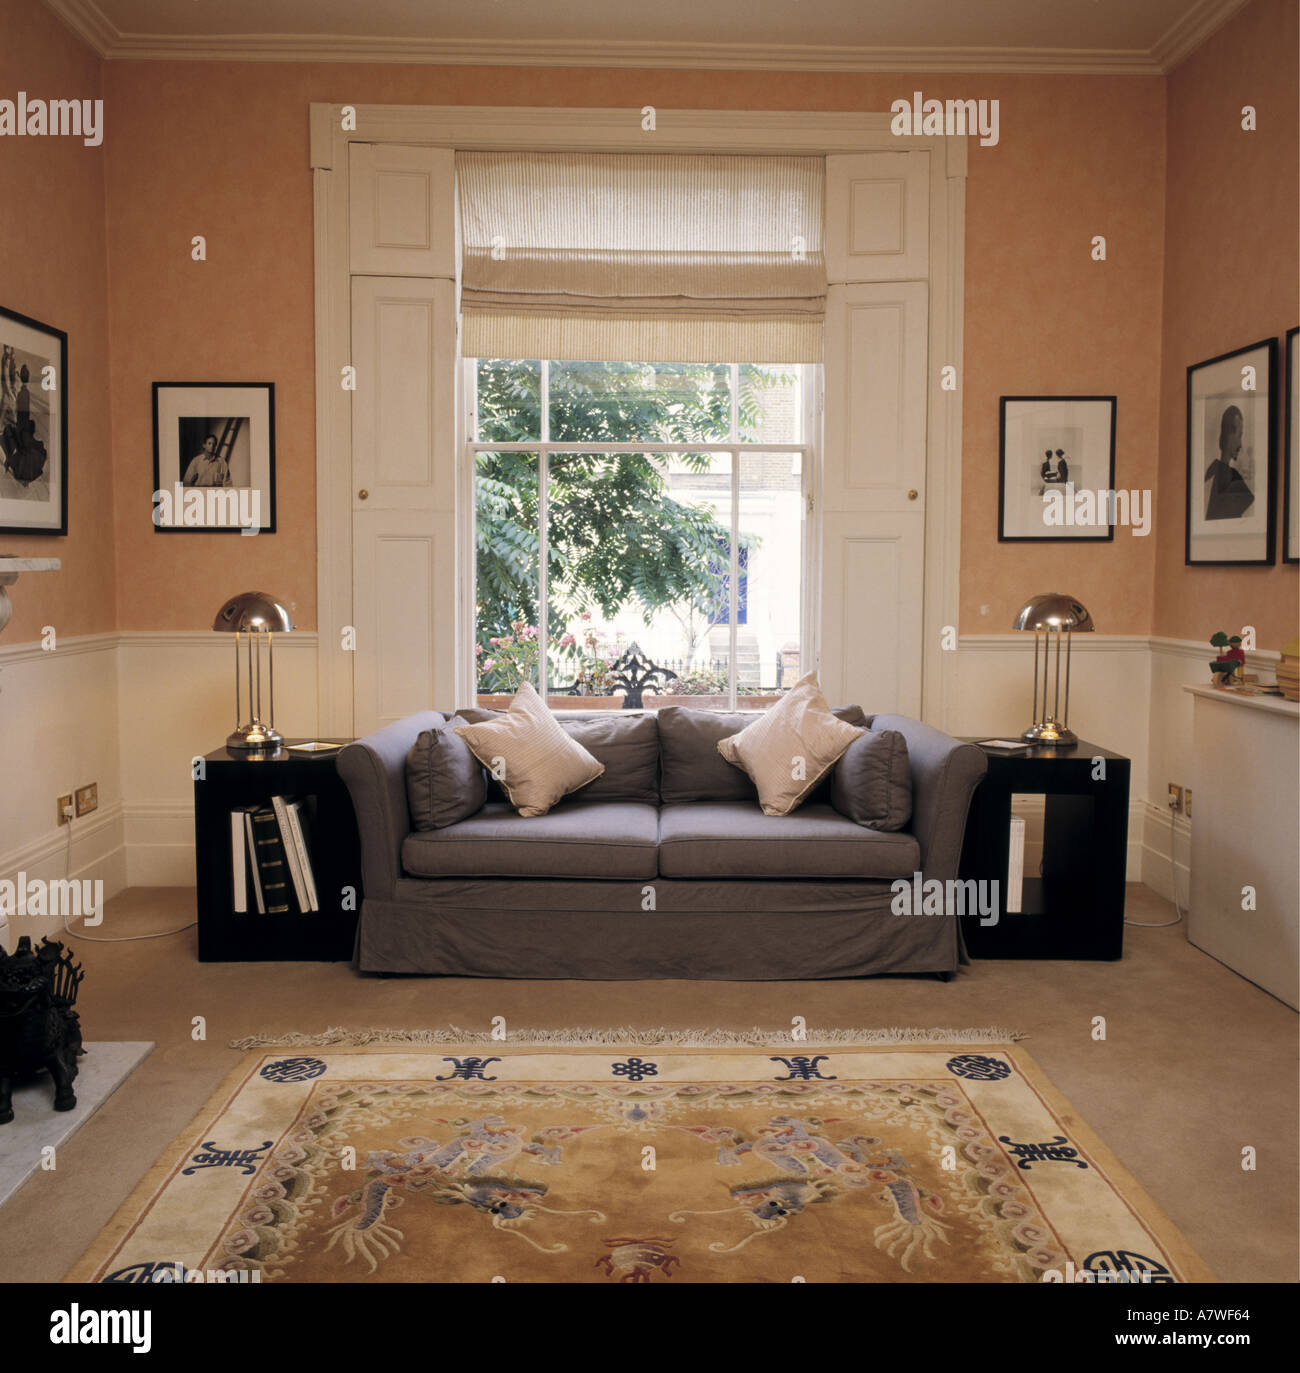 Peach Living Room Grey Sofa In Front Of Window With White Shutters And Blind In